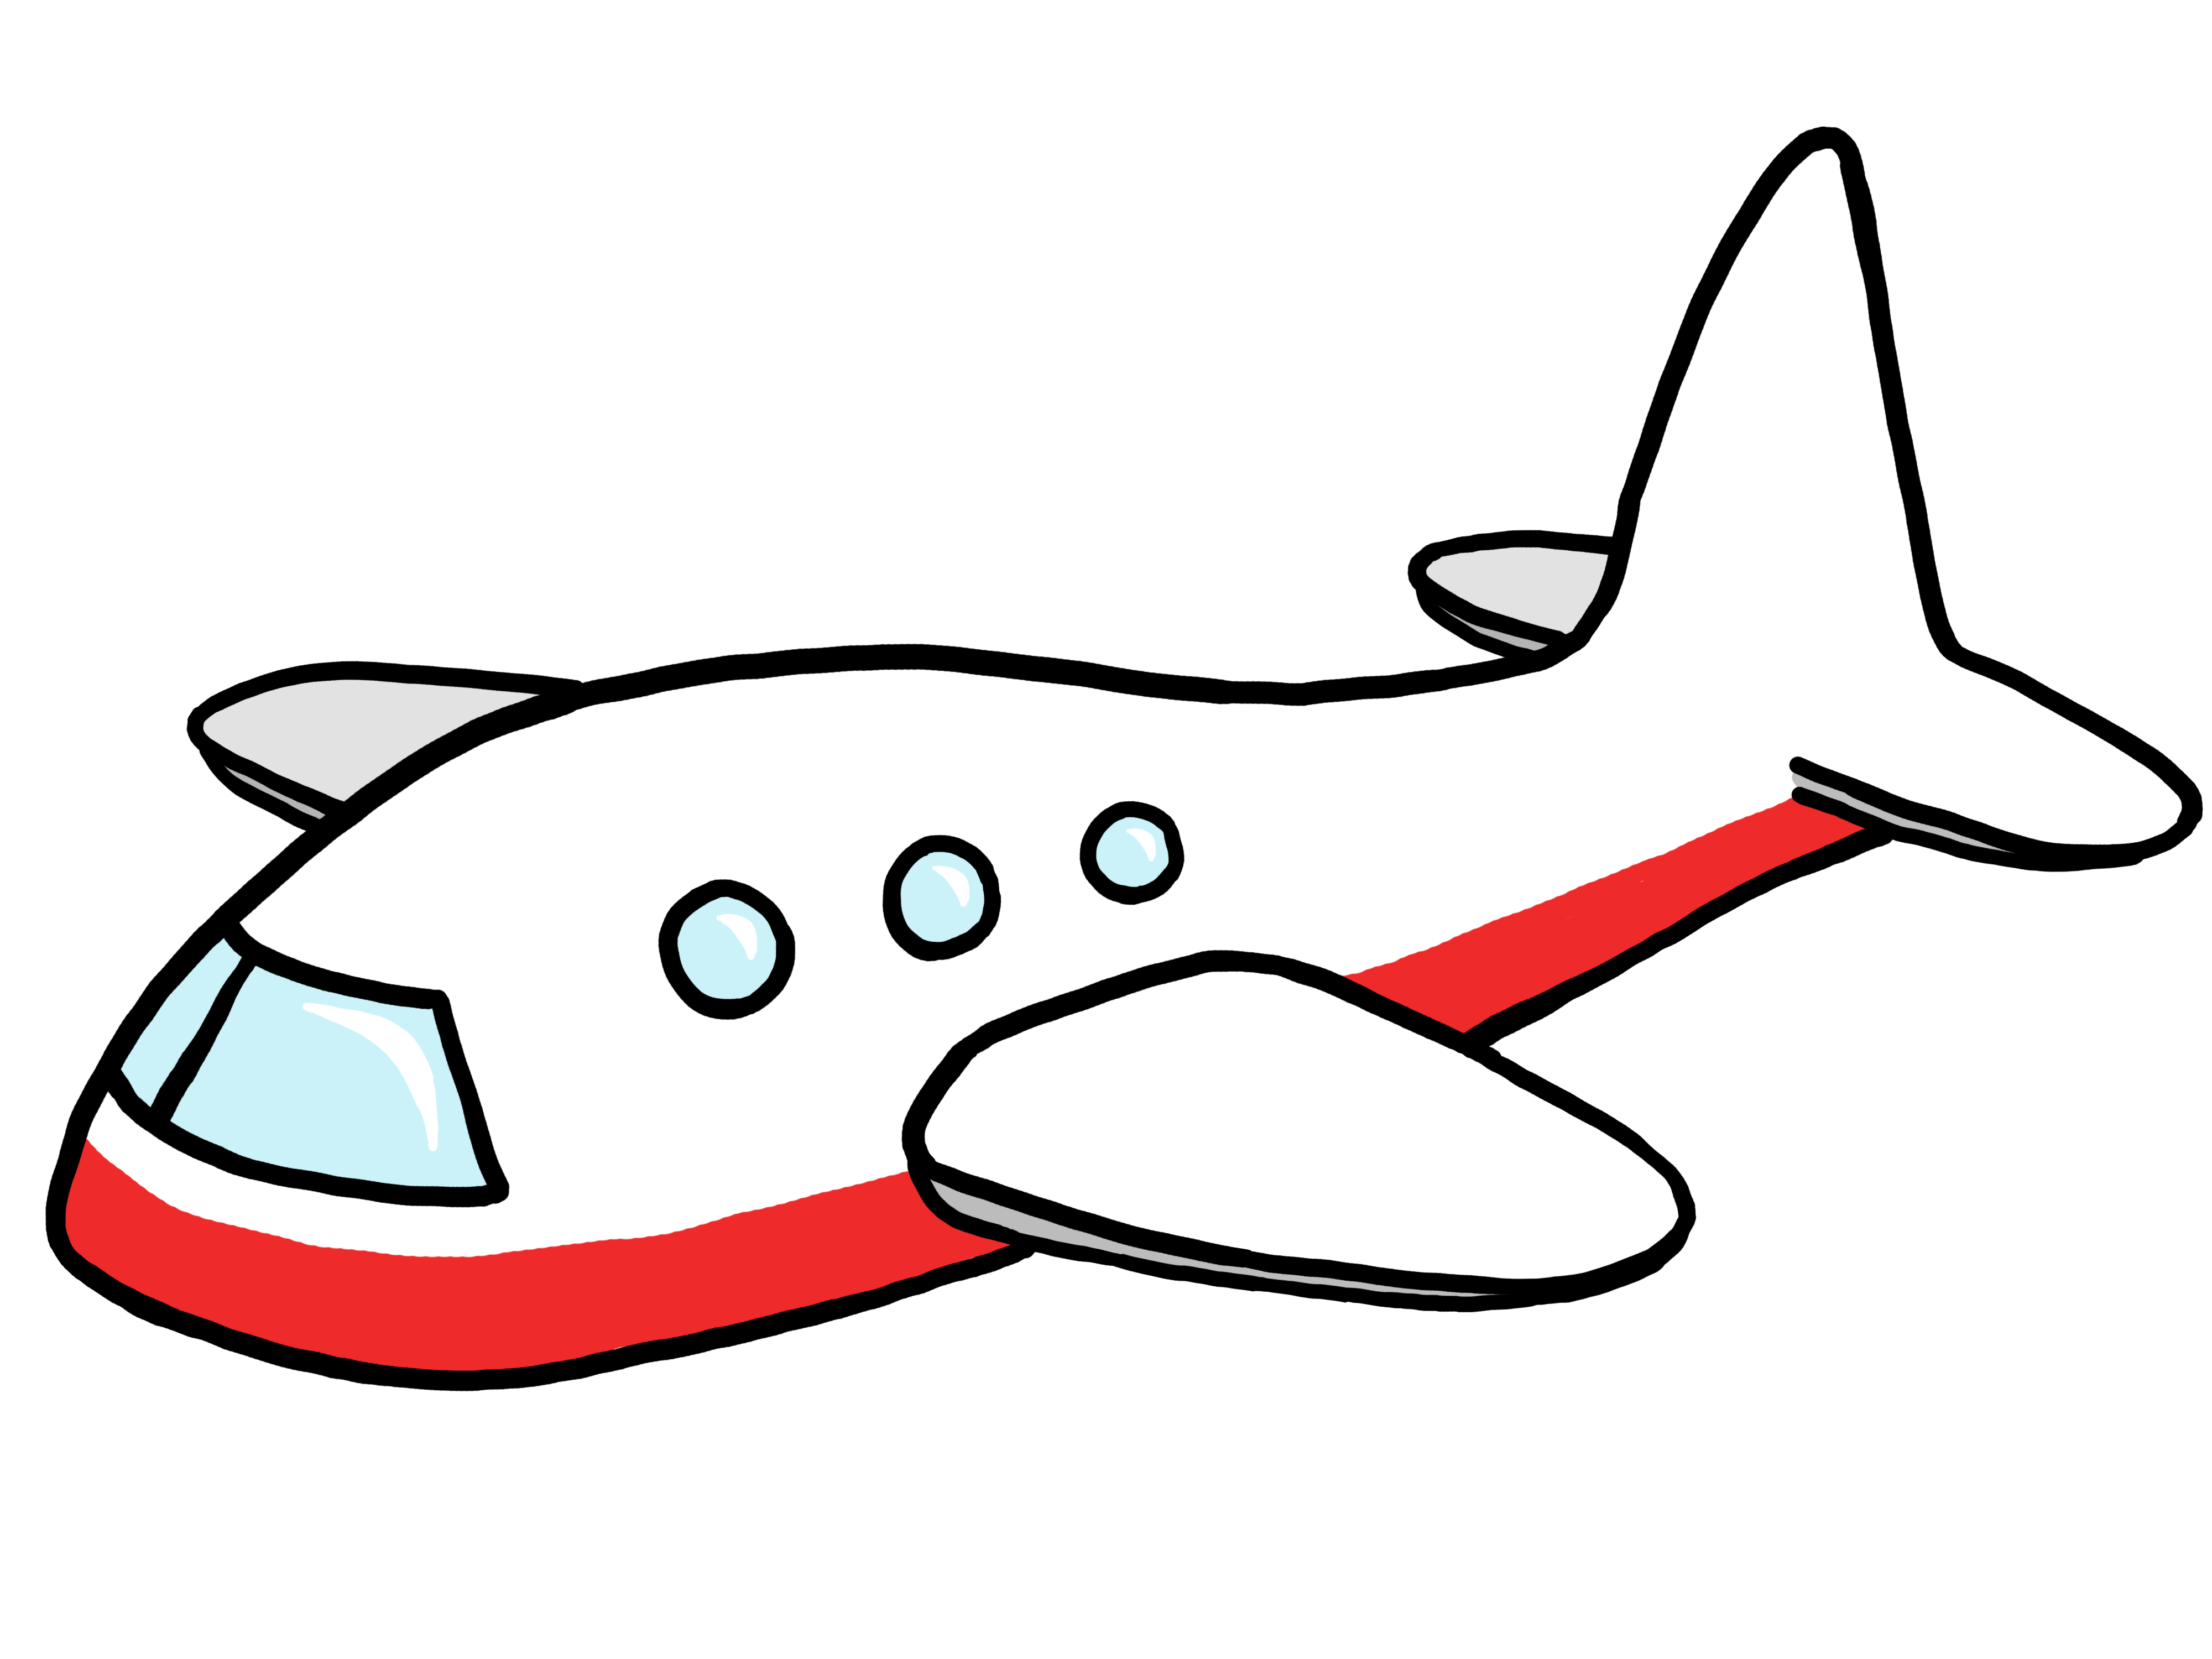 Cute clipart aeroplane (627) Airplane Clipart Images Clipart